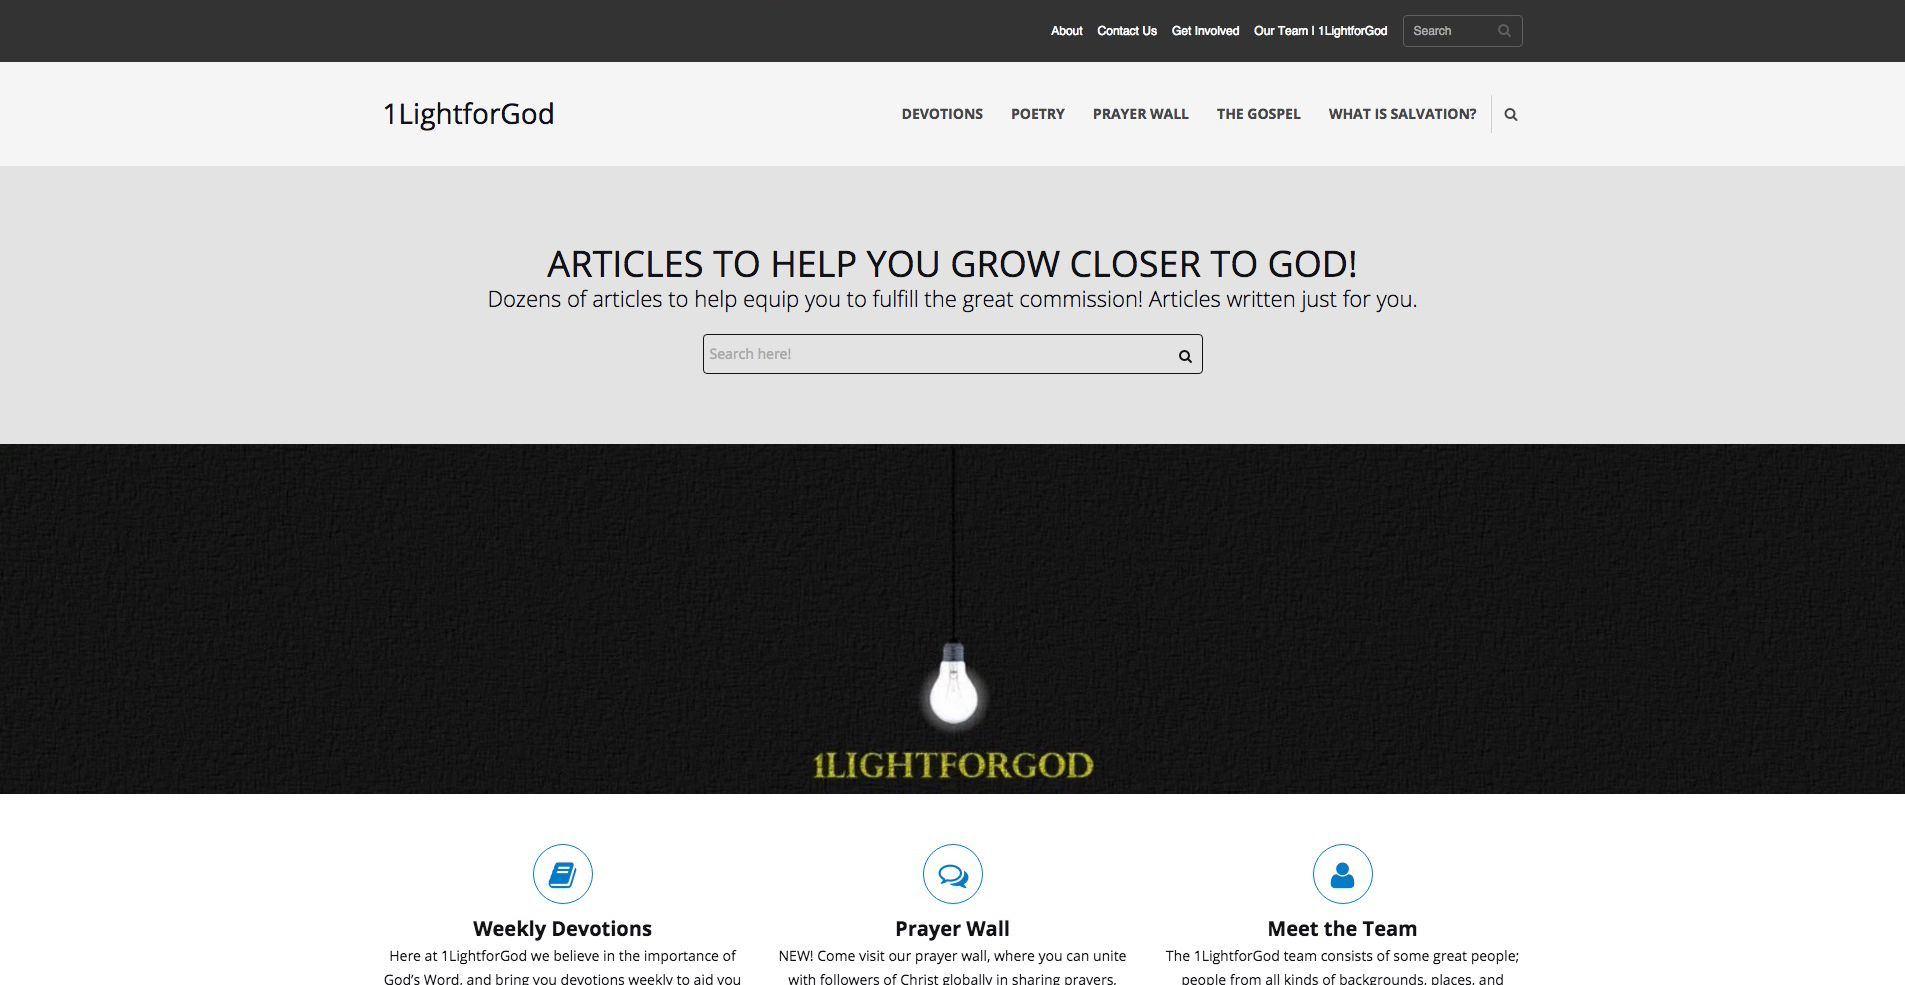 Custom website for 1LightforGod based in Jackson, Mississippi.